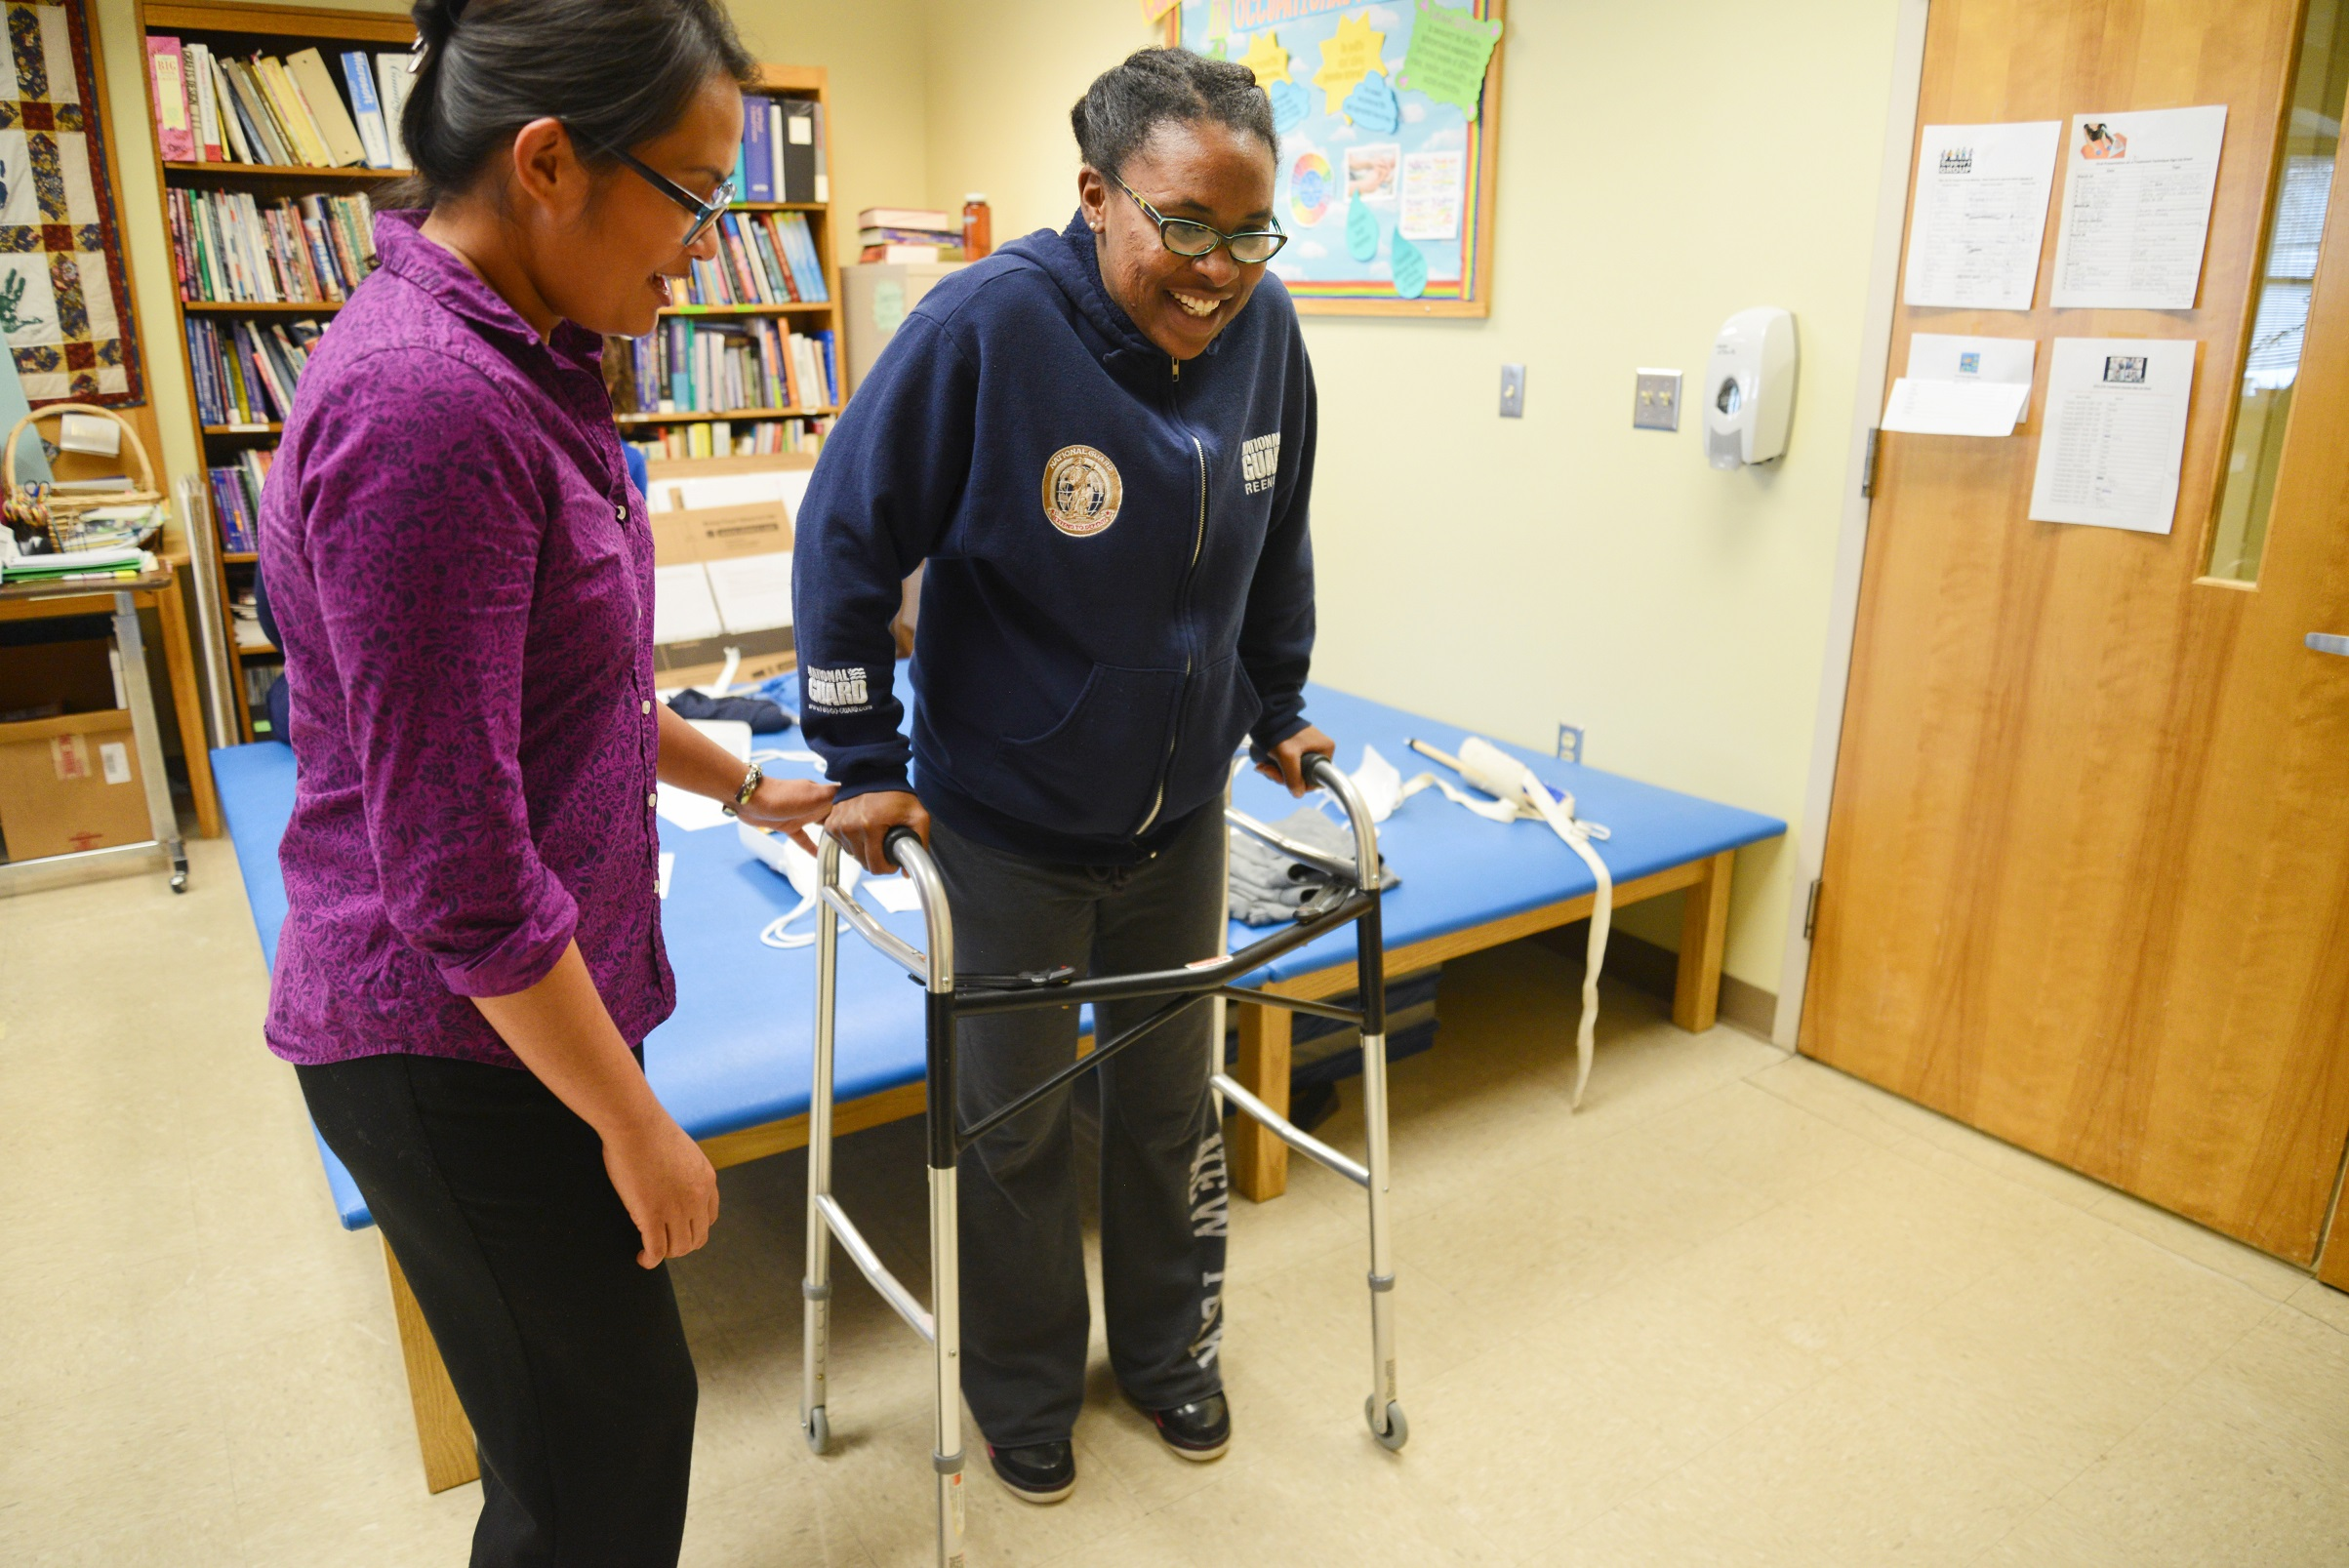 one student using a walker and the other helping